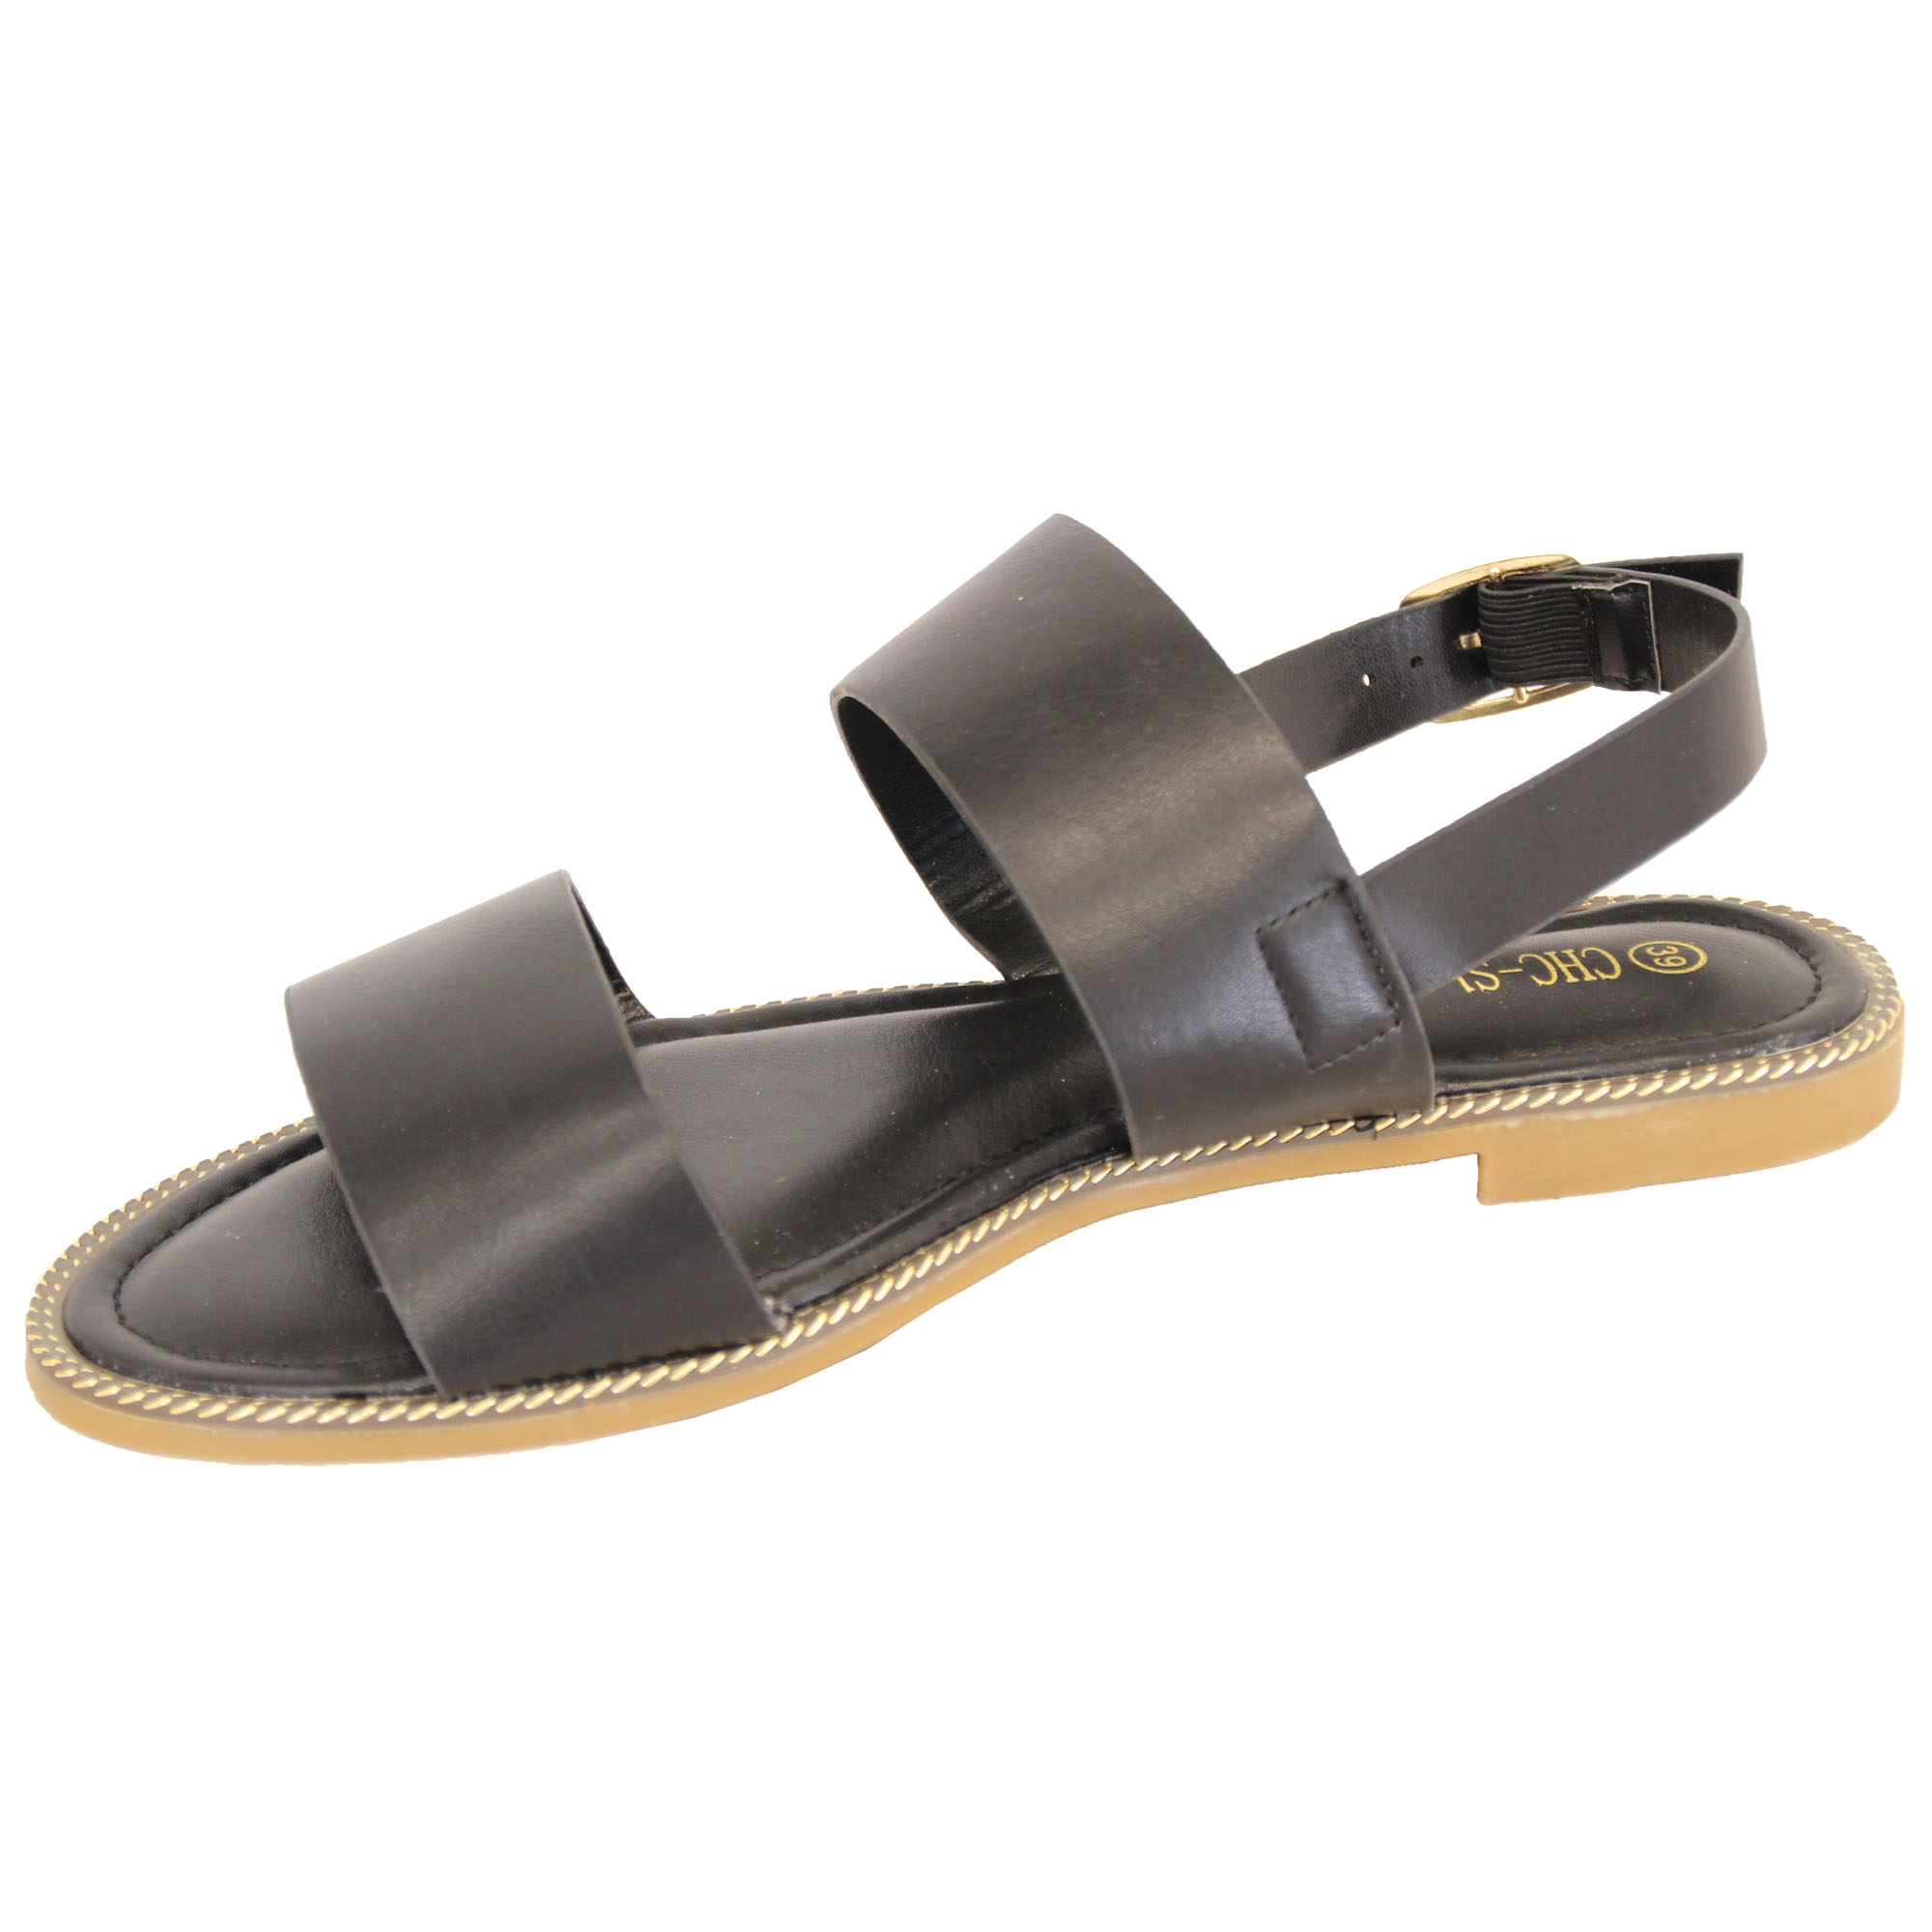 Ladies-Flat-Sandals-Slip-On-Womens-Open-Toe-Shoes-Buckle-Fashion-Wedding-Summer thumbnail 3